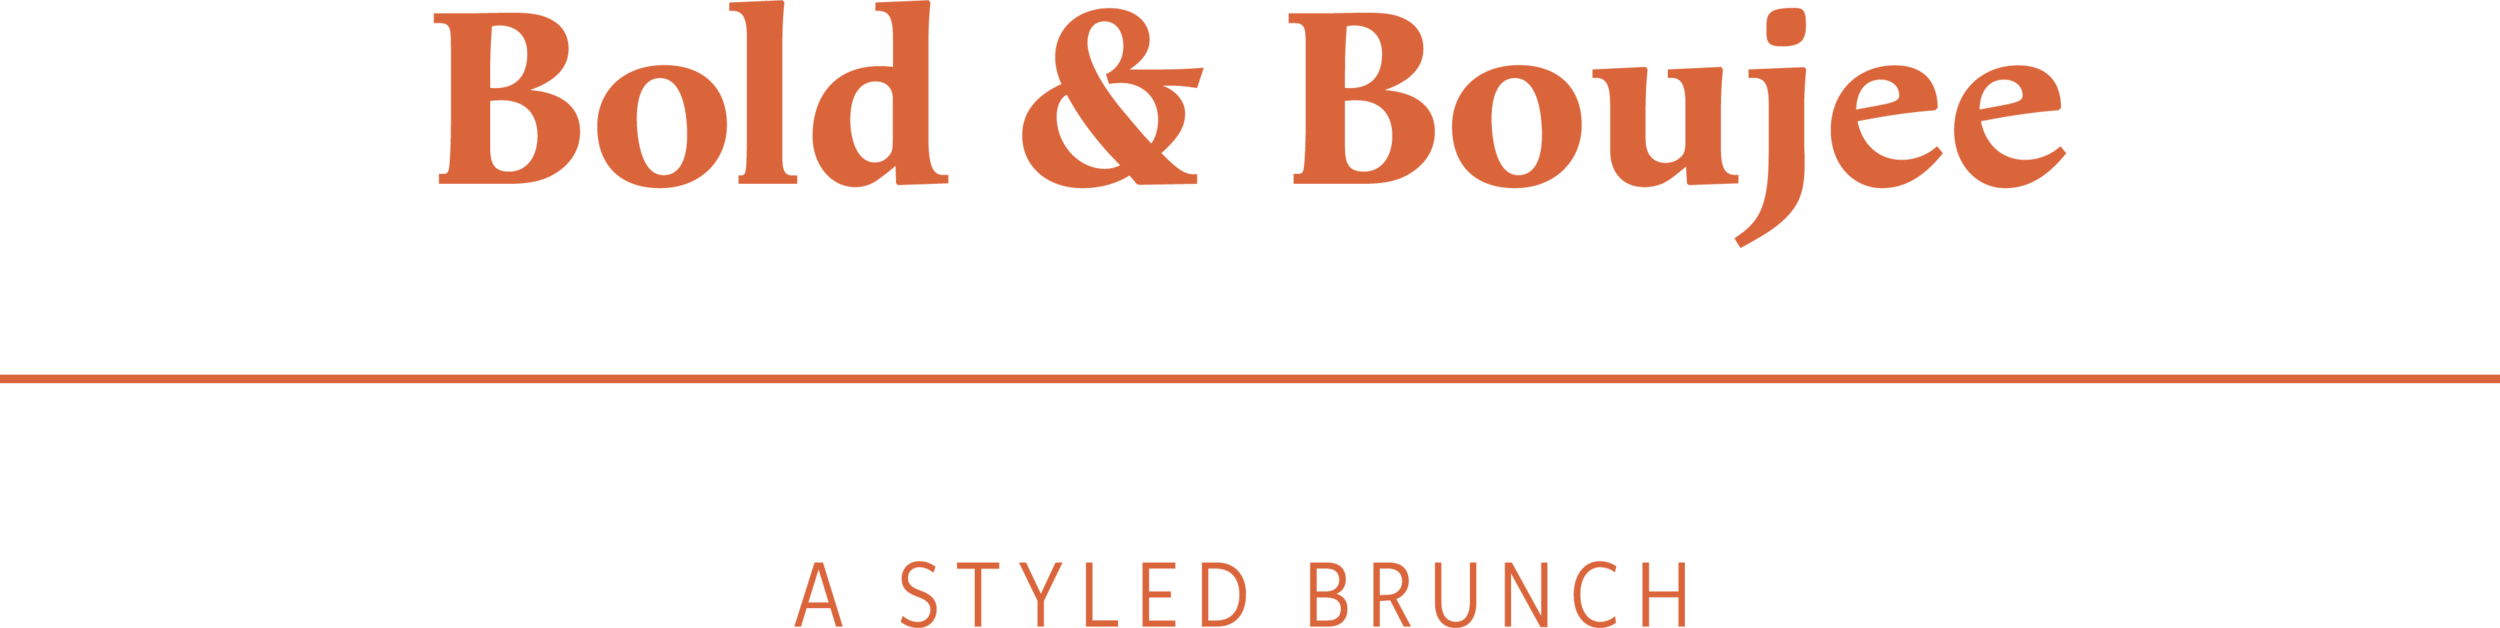 Asset 3BB Logo 1 Orange.png